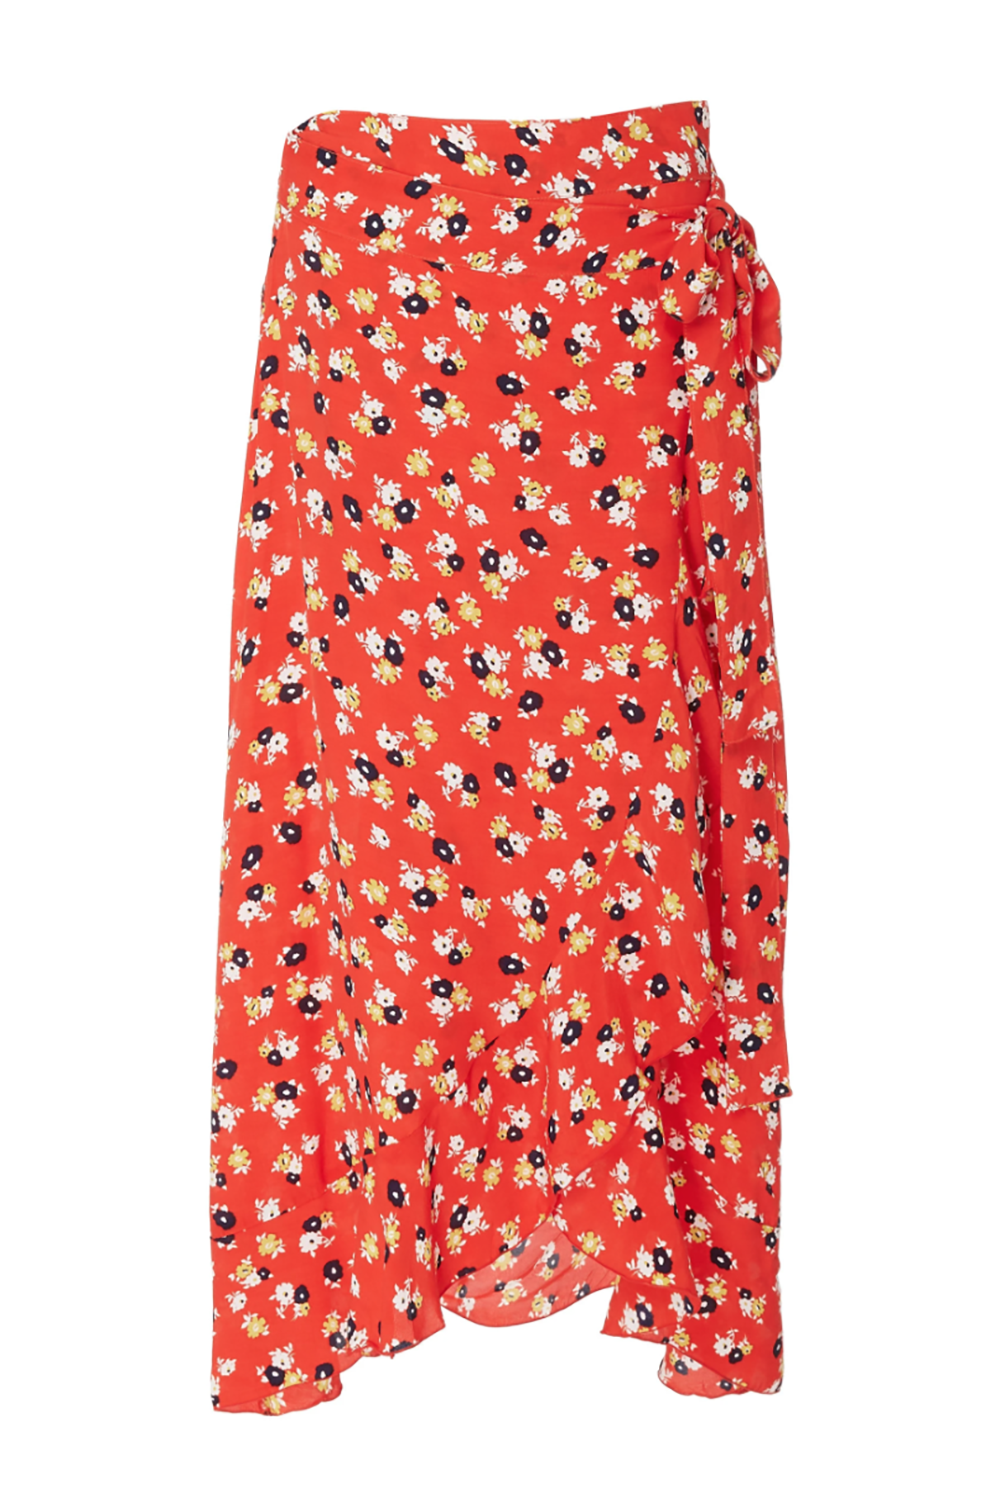 A Bright Floral Skirt Faithfull the Brand modaoperandi.com $150.00 SHOP IT All the clothes from Faithfull the Brand feel like they're made for that quintessential vacation 'gram, including this wrap skirt. It has a bright, poppy background hue and dotted florals, which make you stand out against palm trees and turquoise-colored water backdrops.